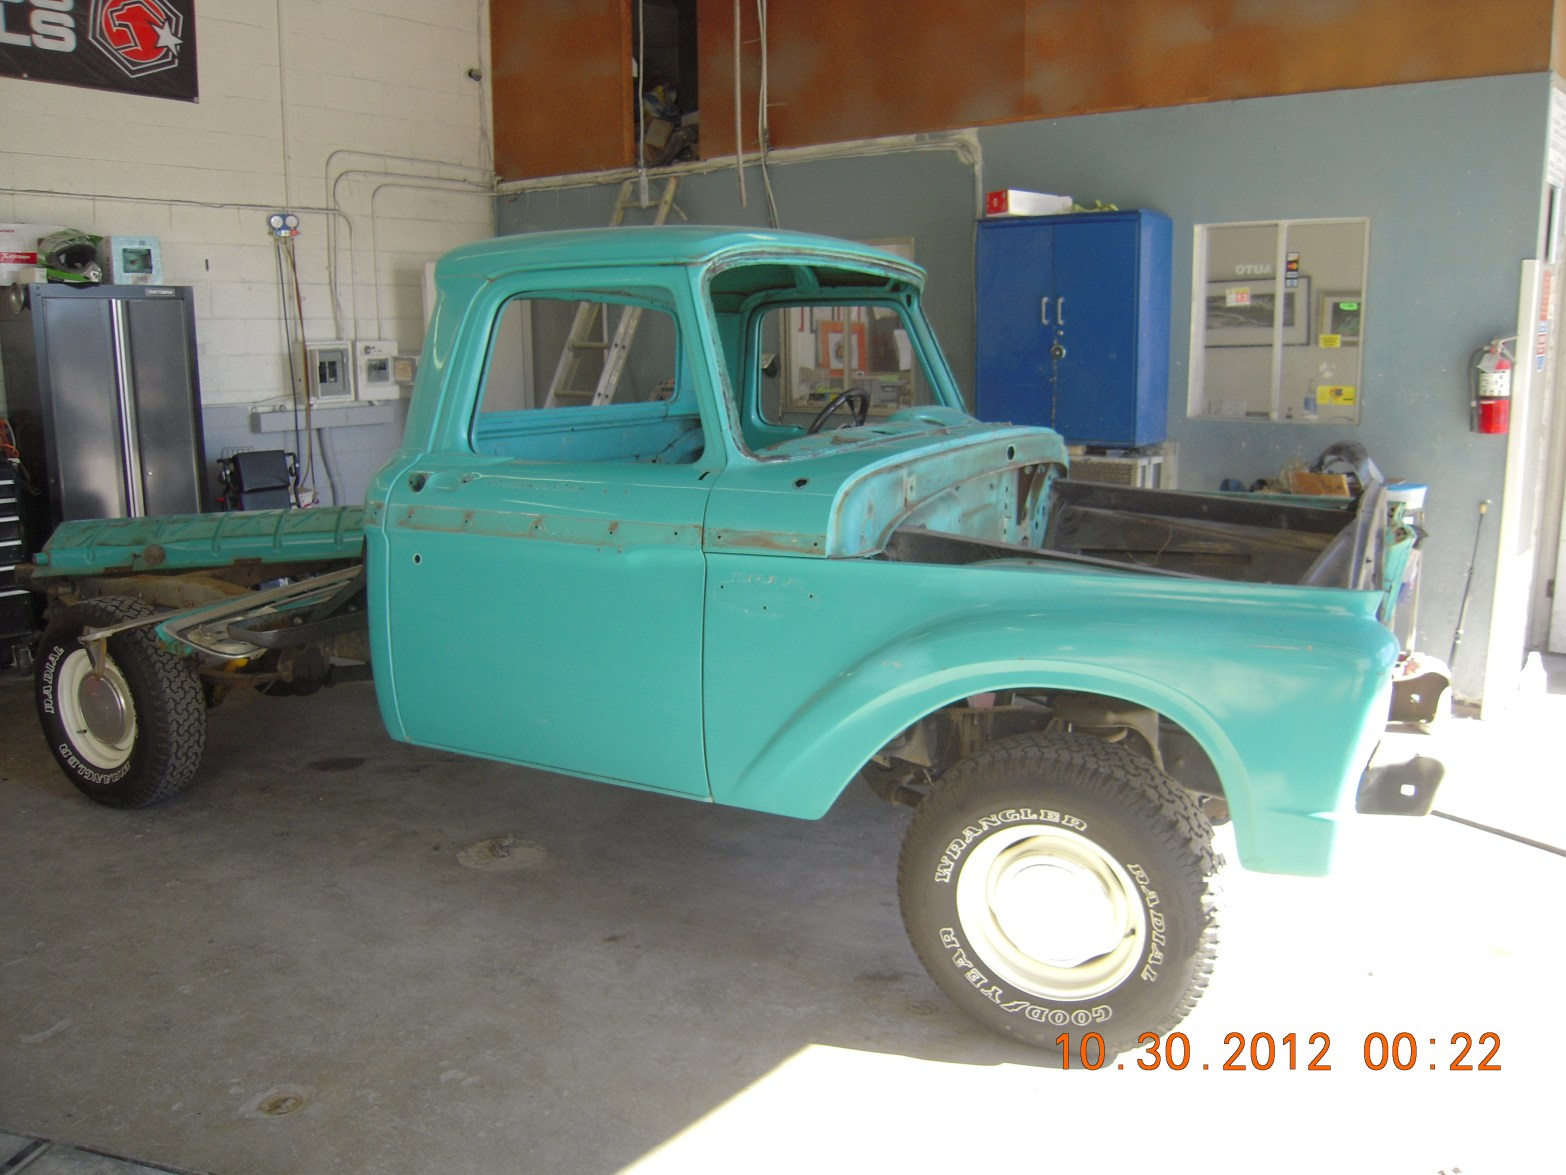 west-coast-body-and-paint-1966-ford-f100-green-white-5